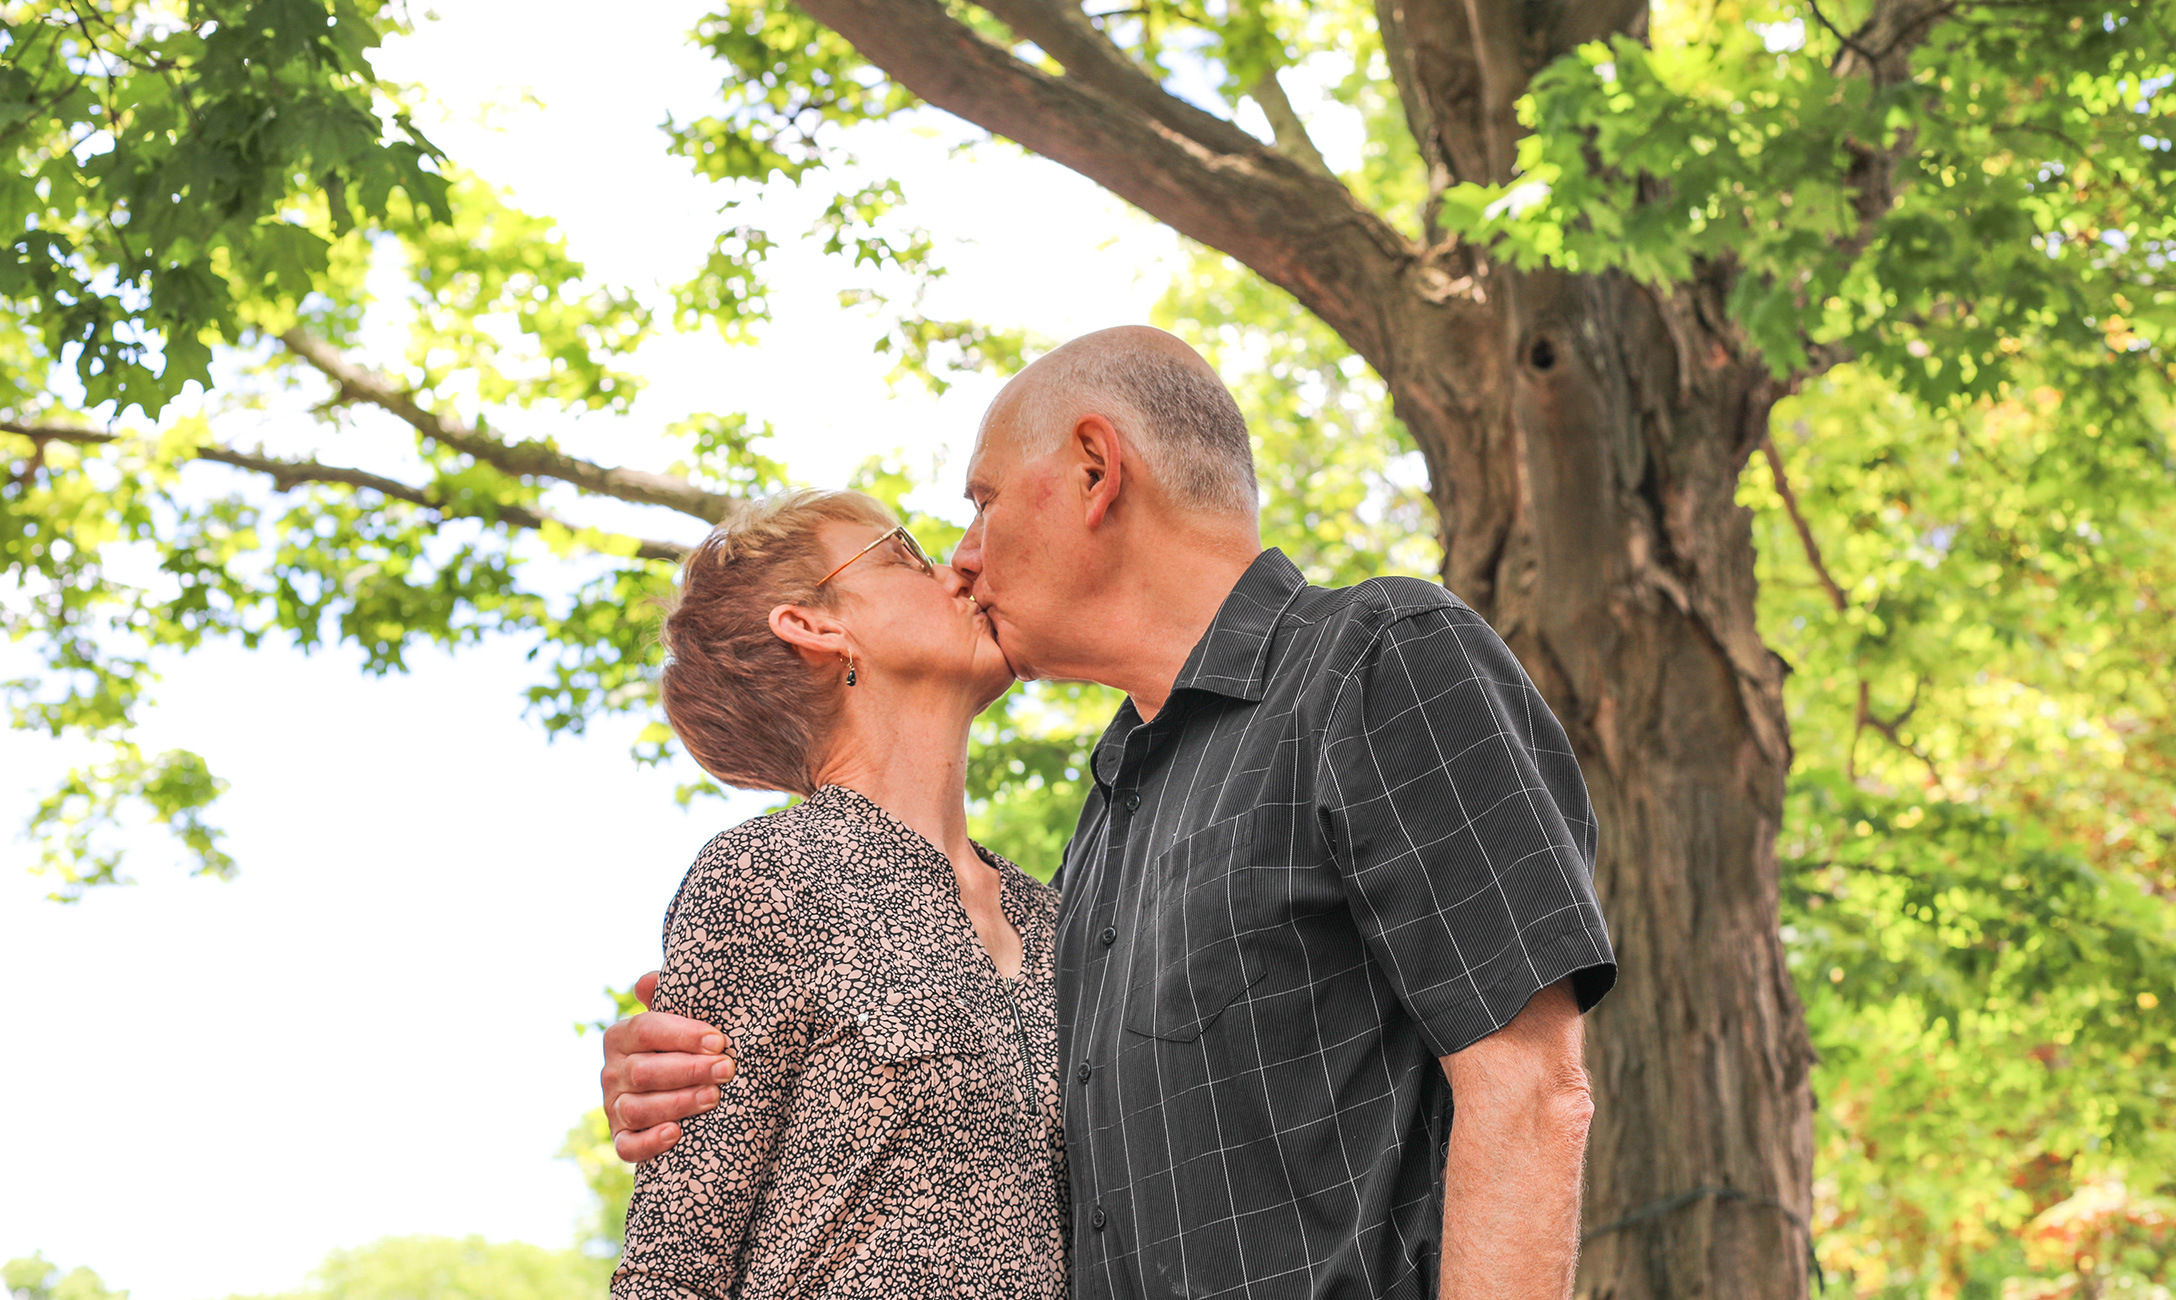 Two people kissing under a tree.